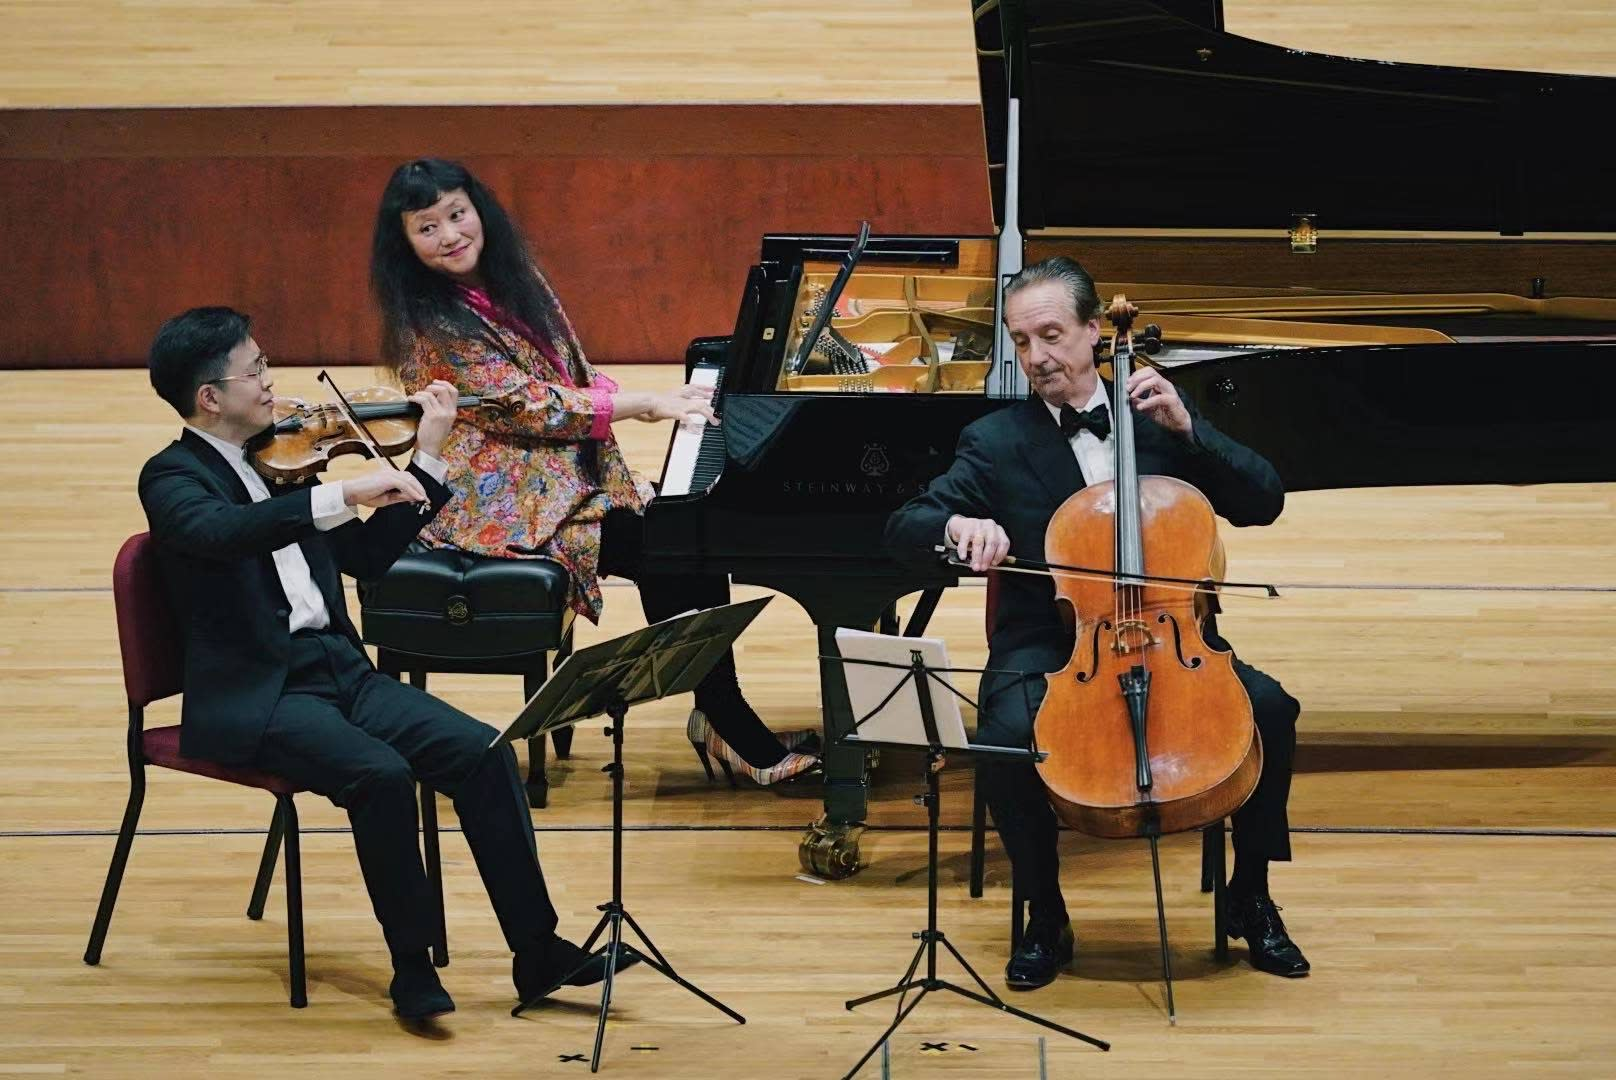 Violinist Paul Huang, pianist Wu Han, cellist David Finckel perform at the National Kaohsiung Center for the Arts - Weiwuying.